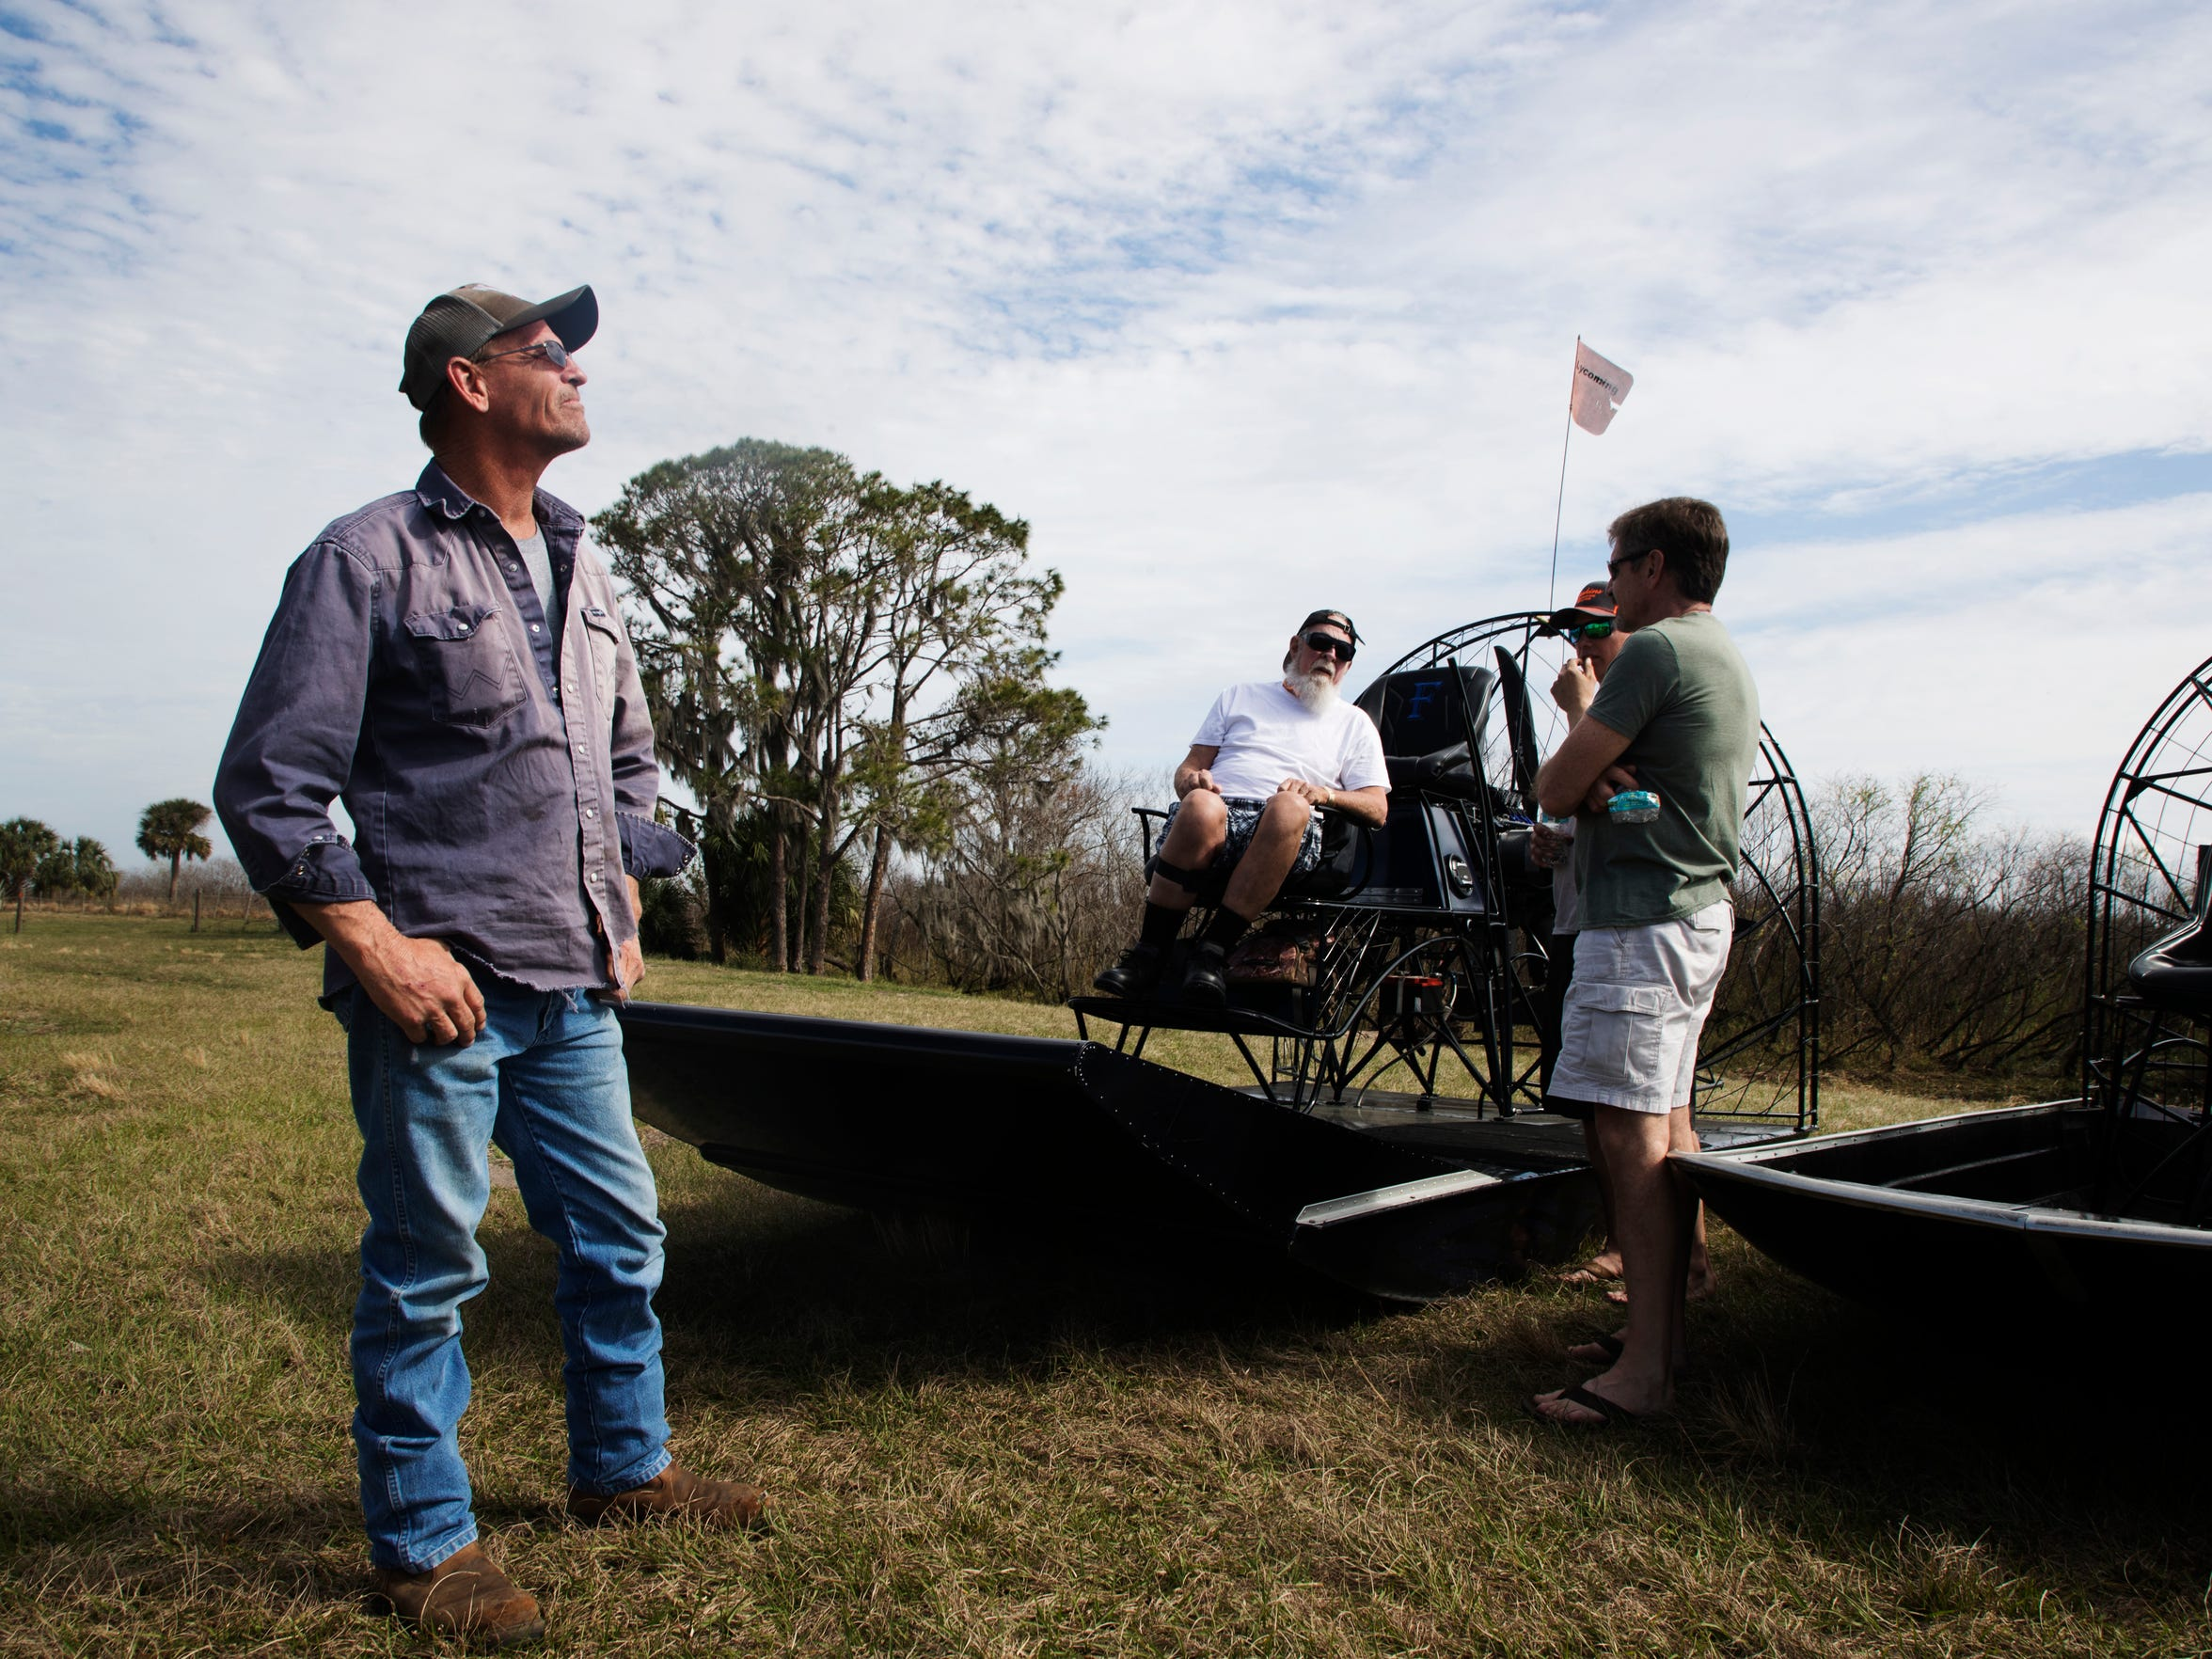 Randy Franey takes his family on an airboat ride on the Kissimmee River in between Lake Toho and Lake Kissimmee. He is a lifelong resident of the area and loves the area.